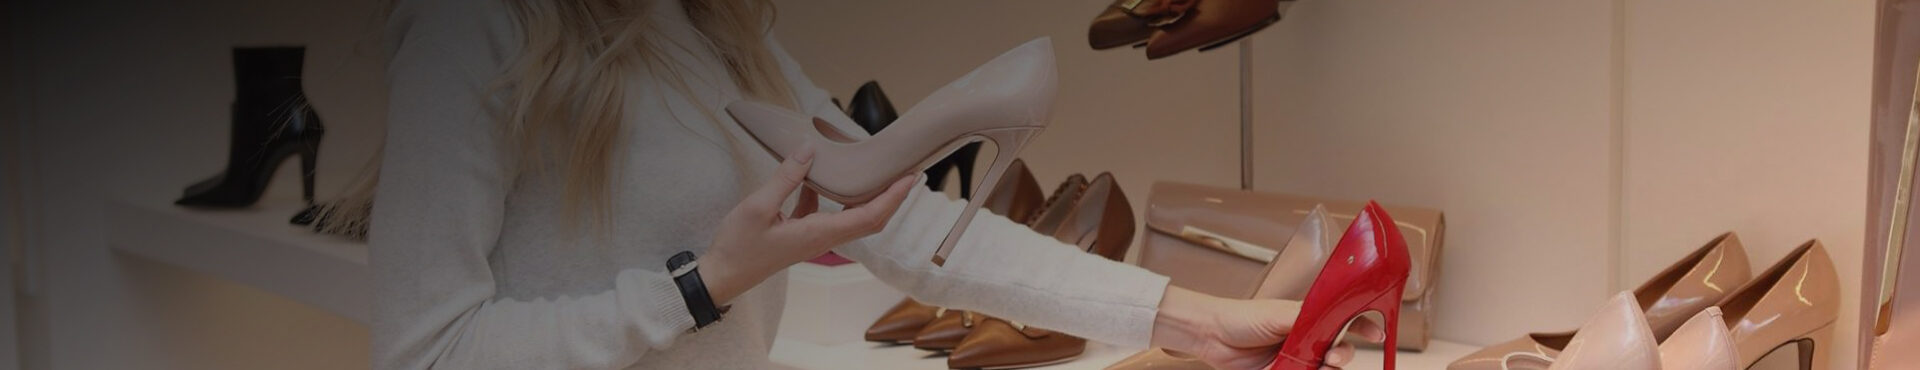 SEO promotion for an online store of footwear and clothing brands